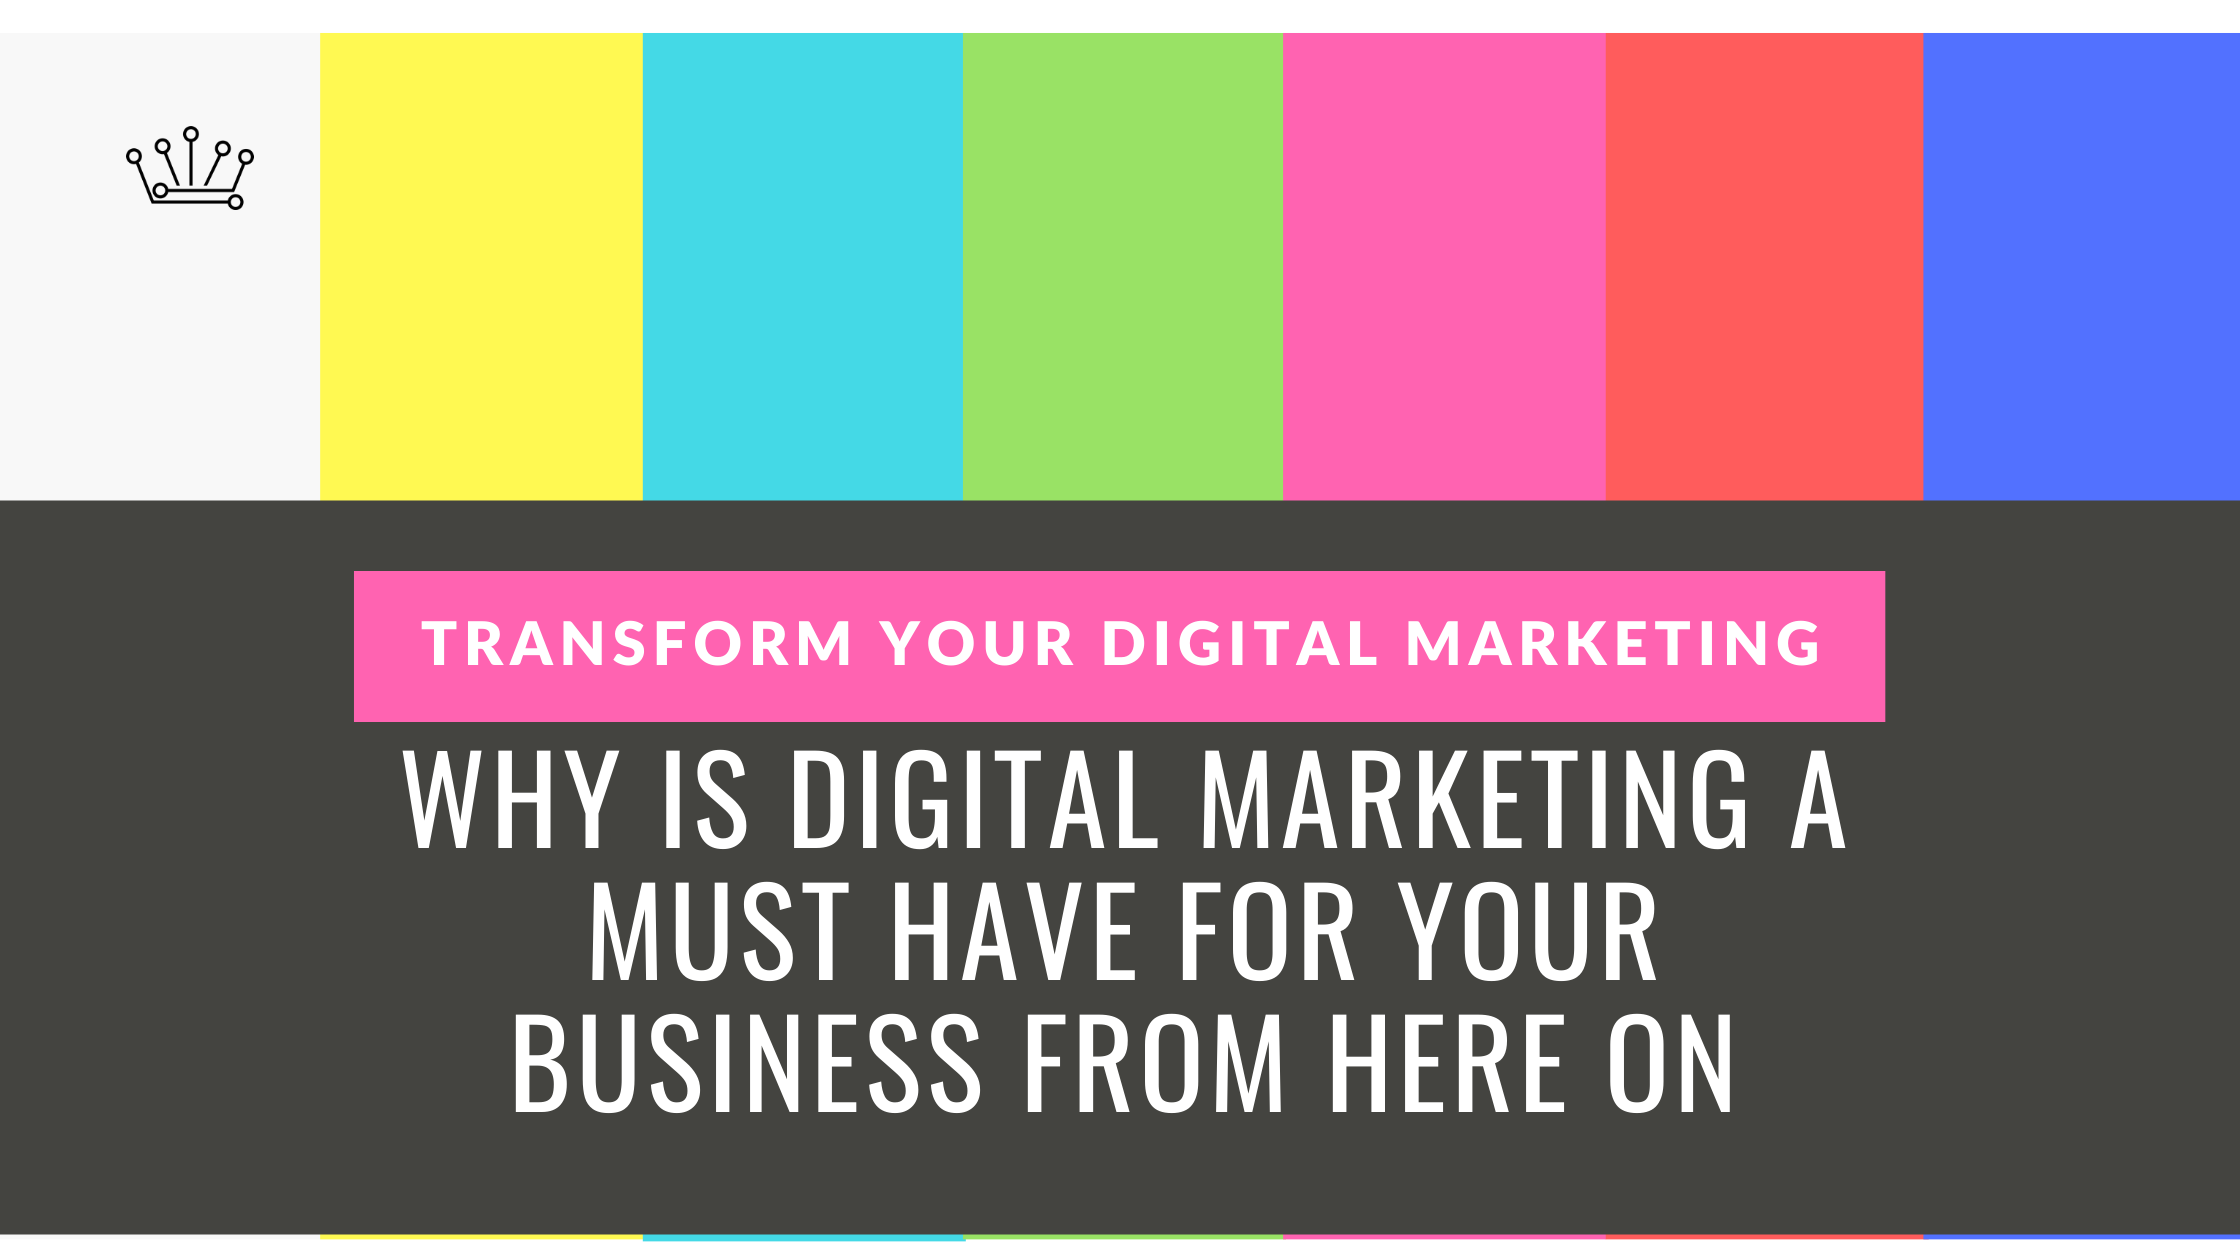 Why is Digital Marketing A Must Have for Your Business from Here On